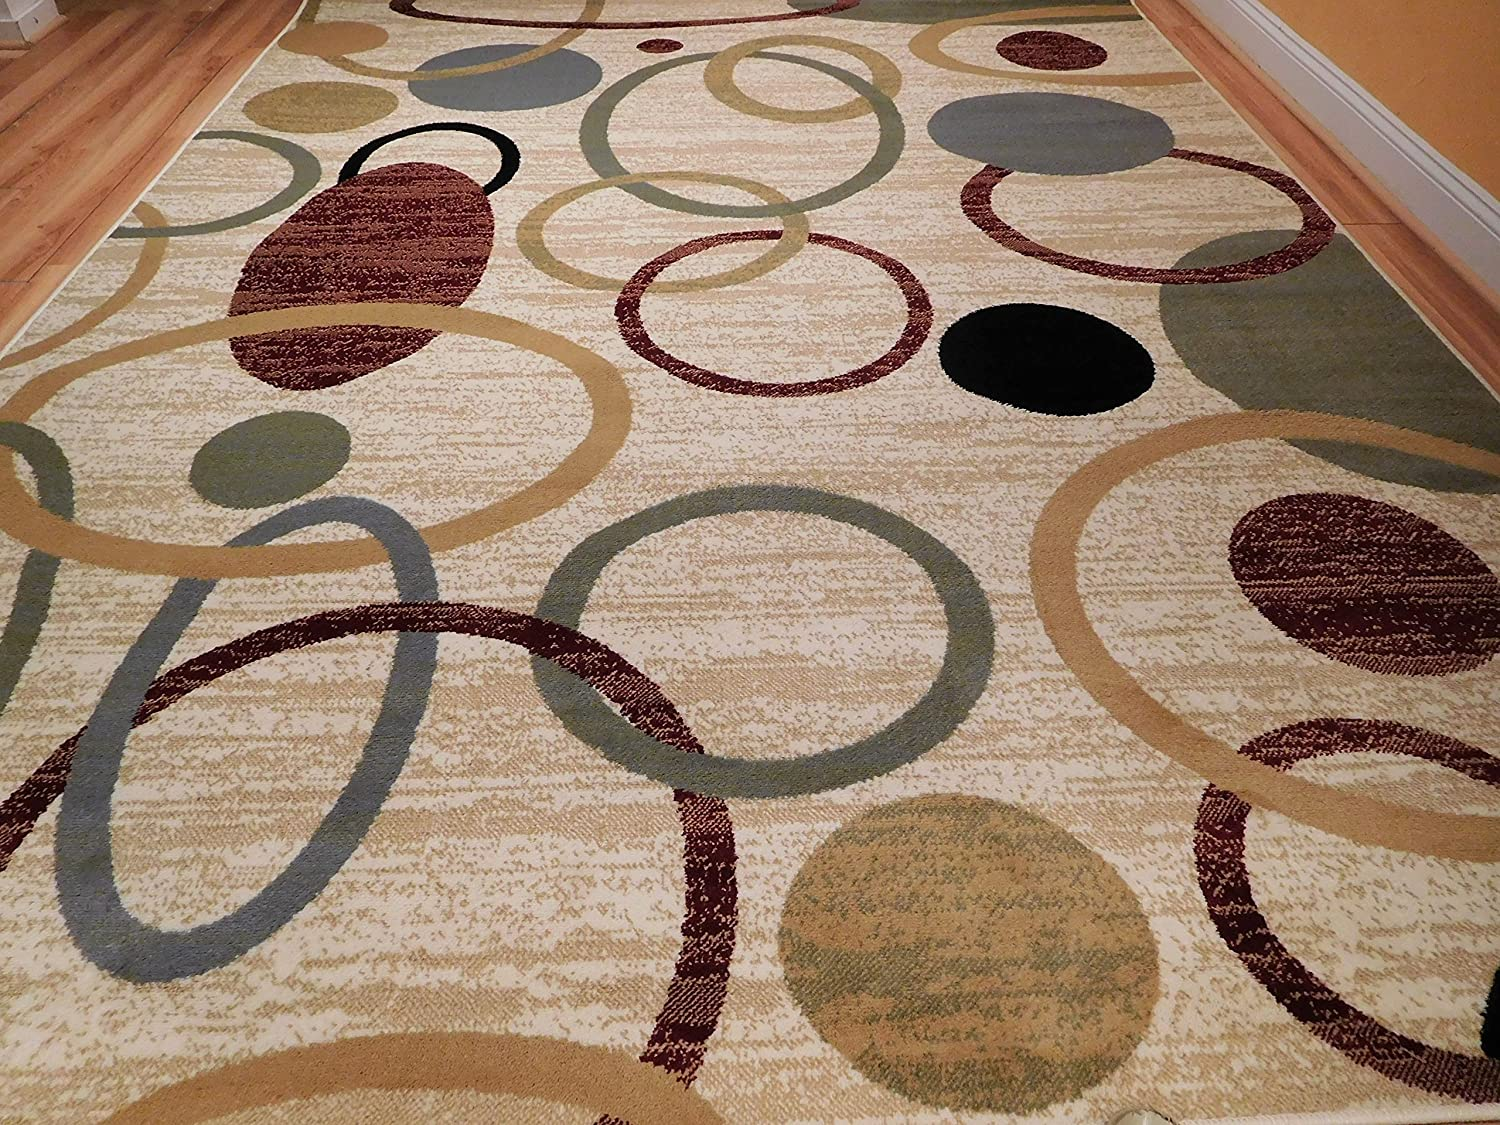 Super New Home Multicolor Modern Rugs For Living Room Abstract Circles 5X8 Rugs For Brown Sofa 5 By 7 Wave Inspired India Printed Rug 5X8 Feet Home Interior And Landscaping Oversignezvosmurscom